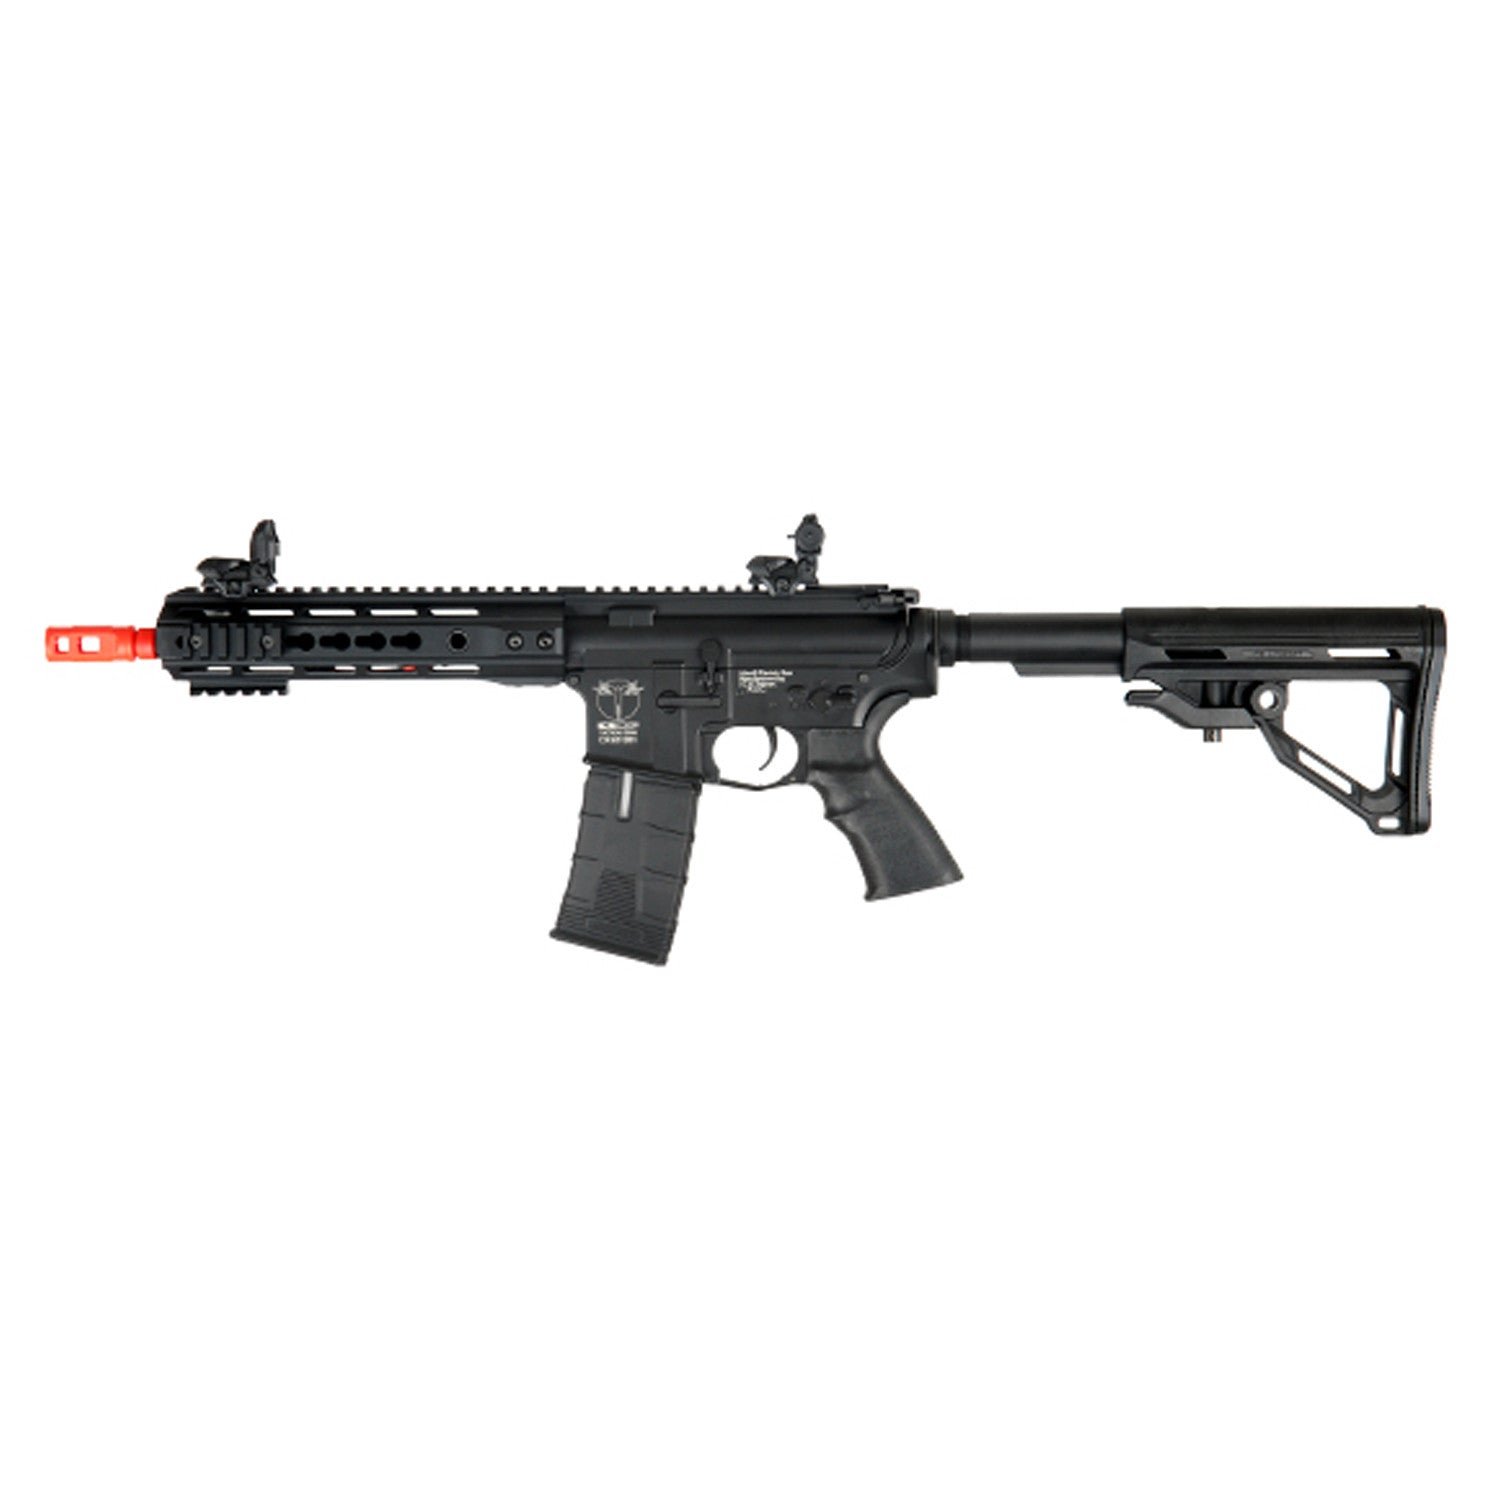 ICS M4 Key Mod Full Metal AEG, Short Version - 400 FPS, Metal body & split gear box, Front & rear folding sight, Blowback action